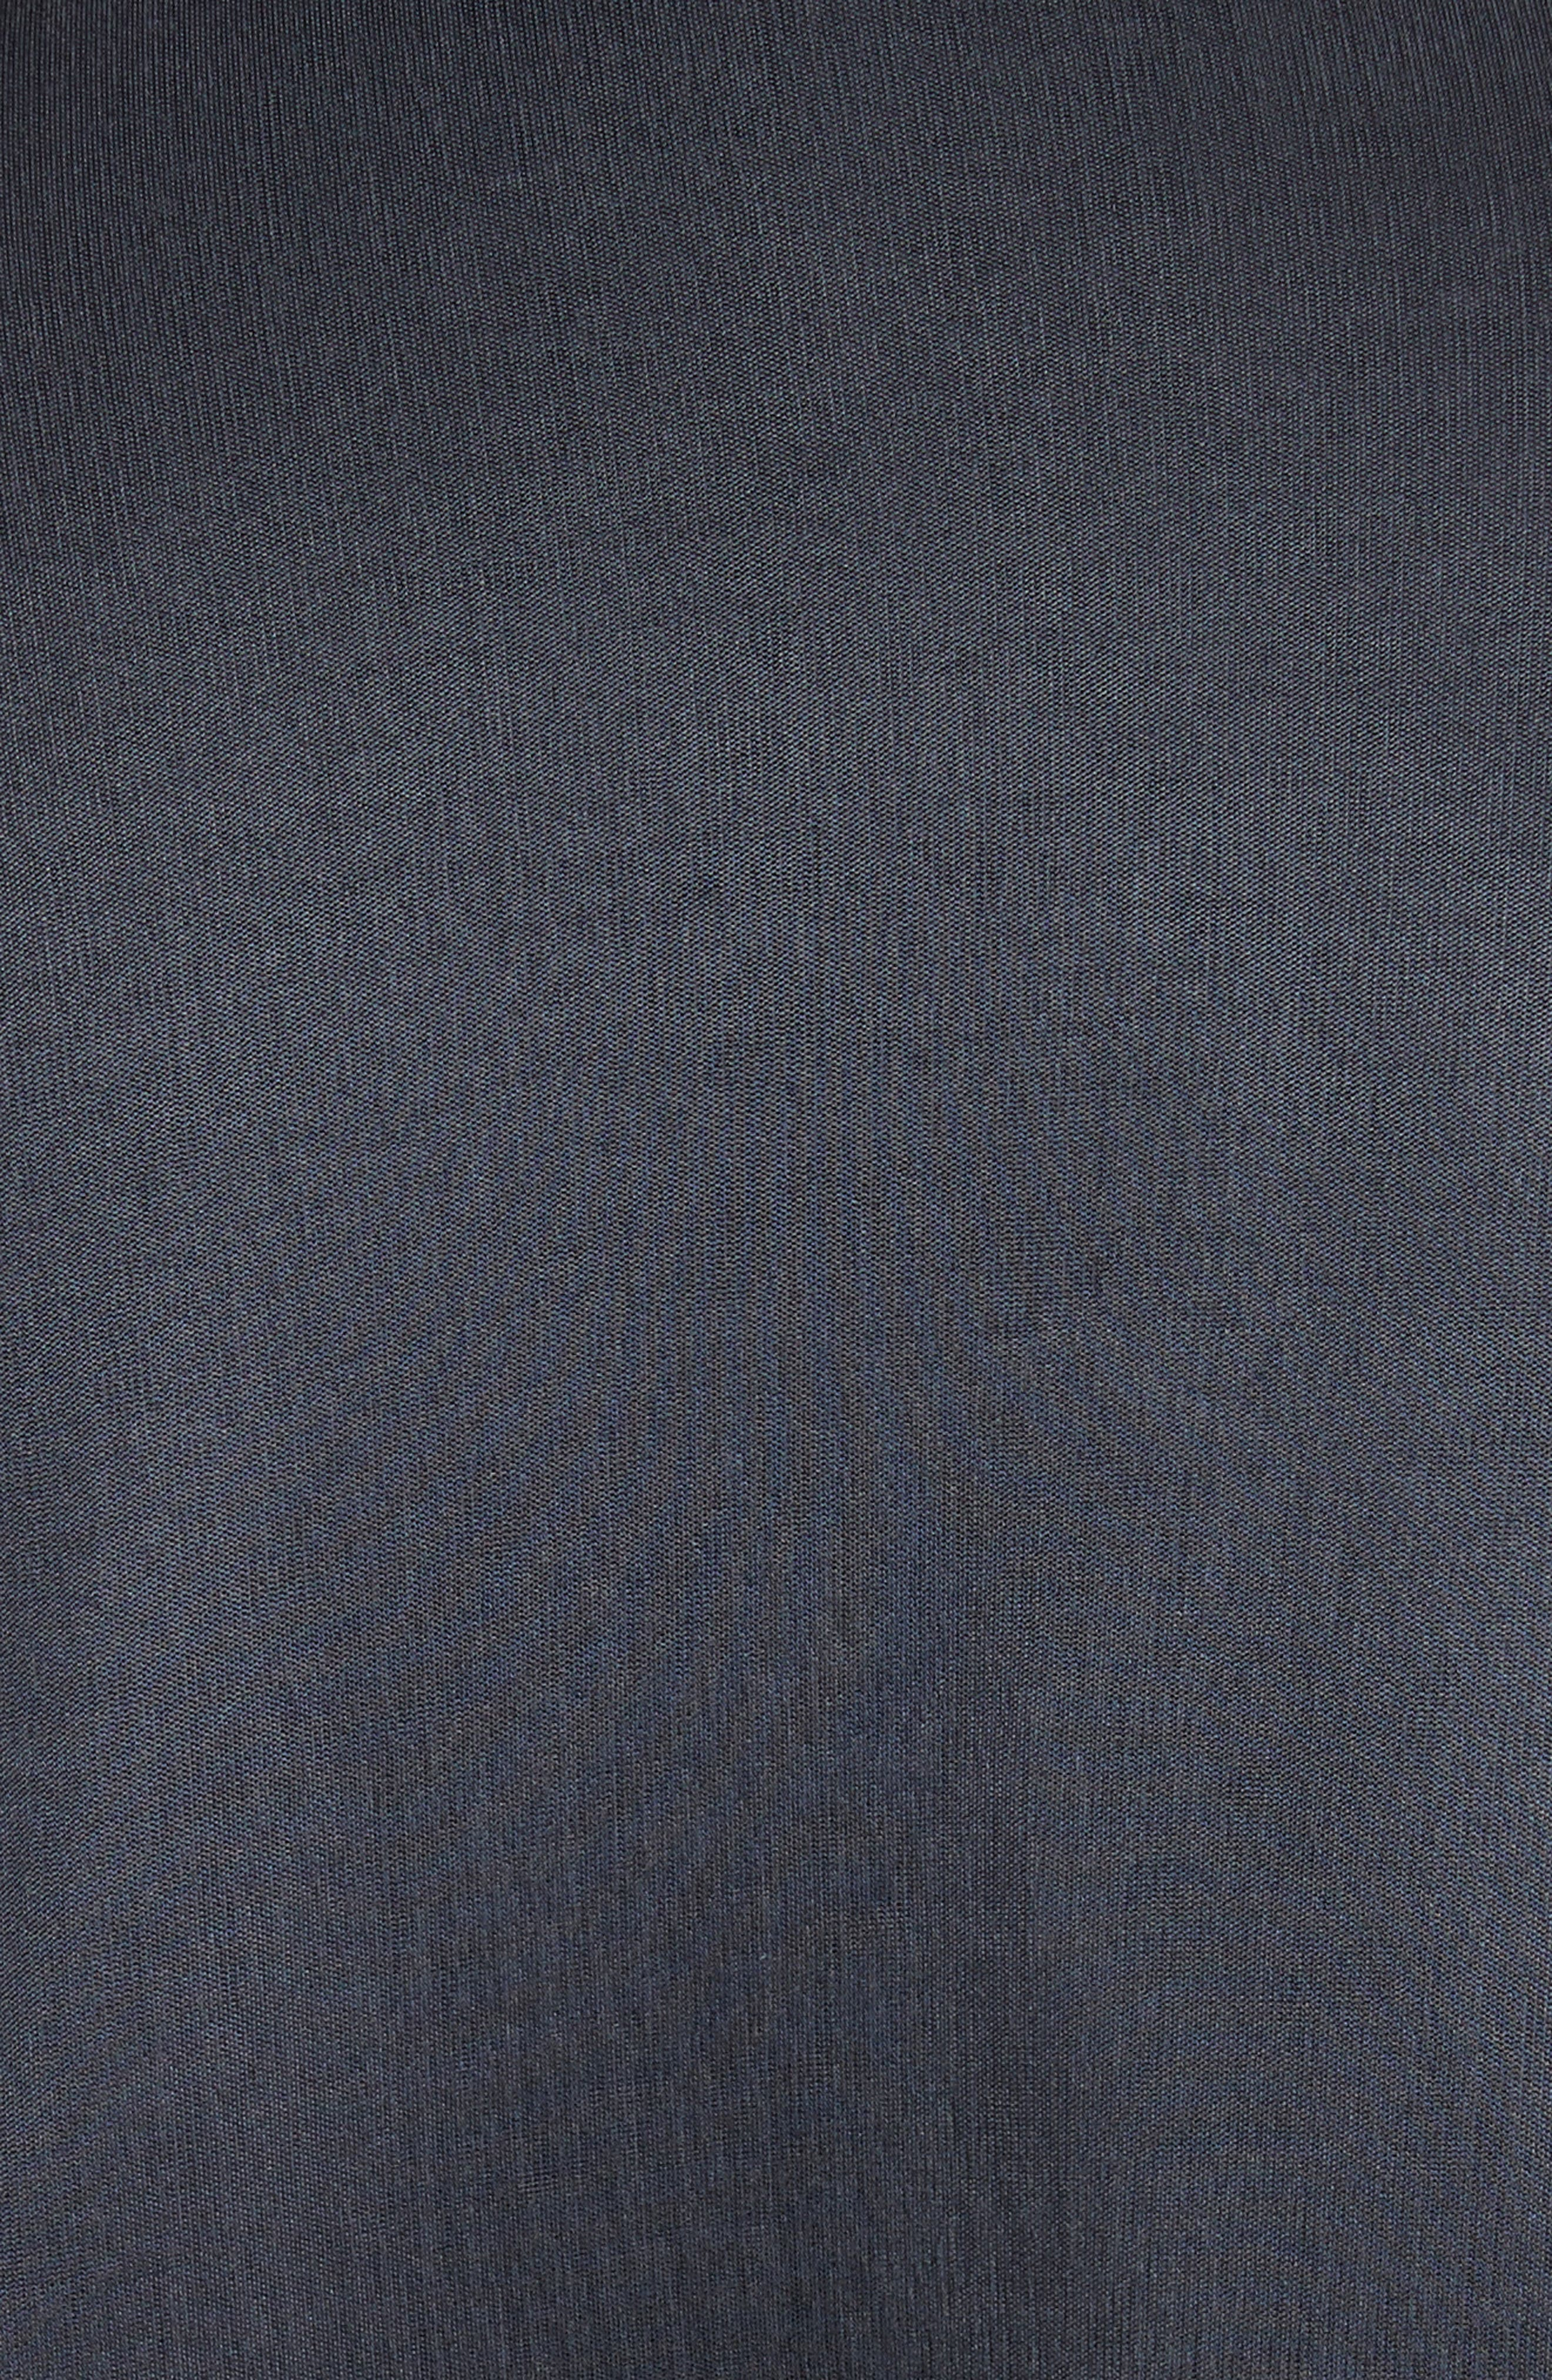 Immortal Flare Sleeve Sweater,                             Alternate thumbnail 3, color,                             Charcoal Navy